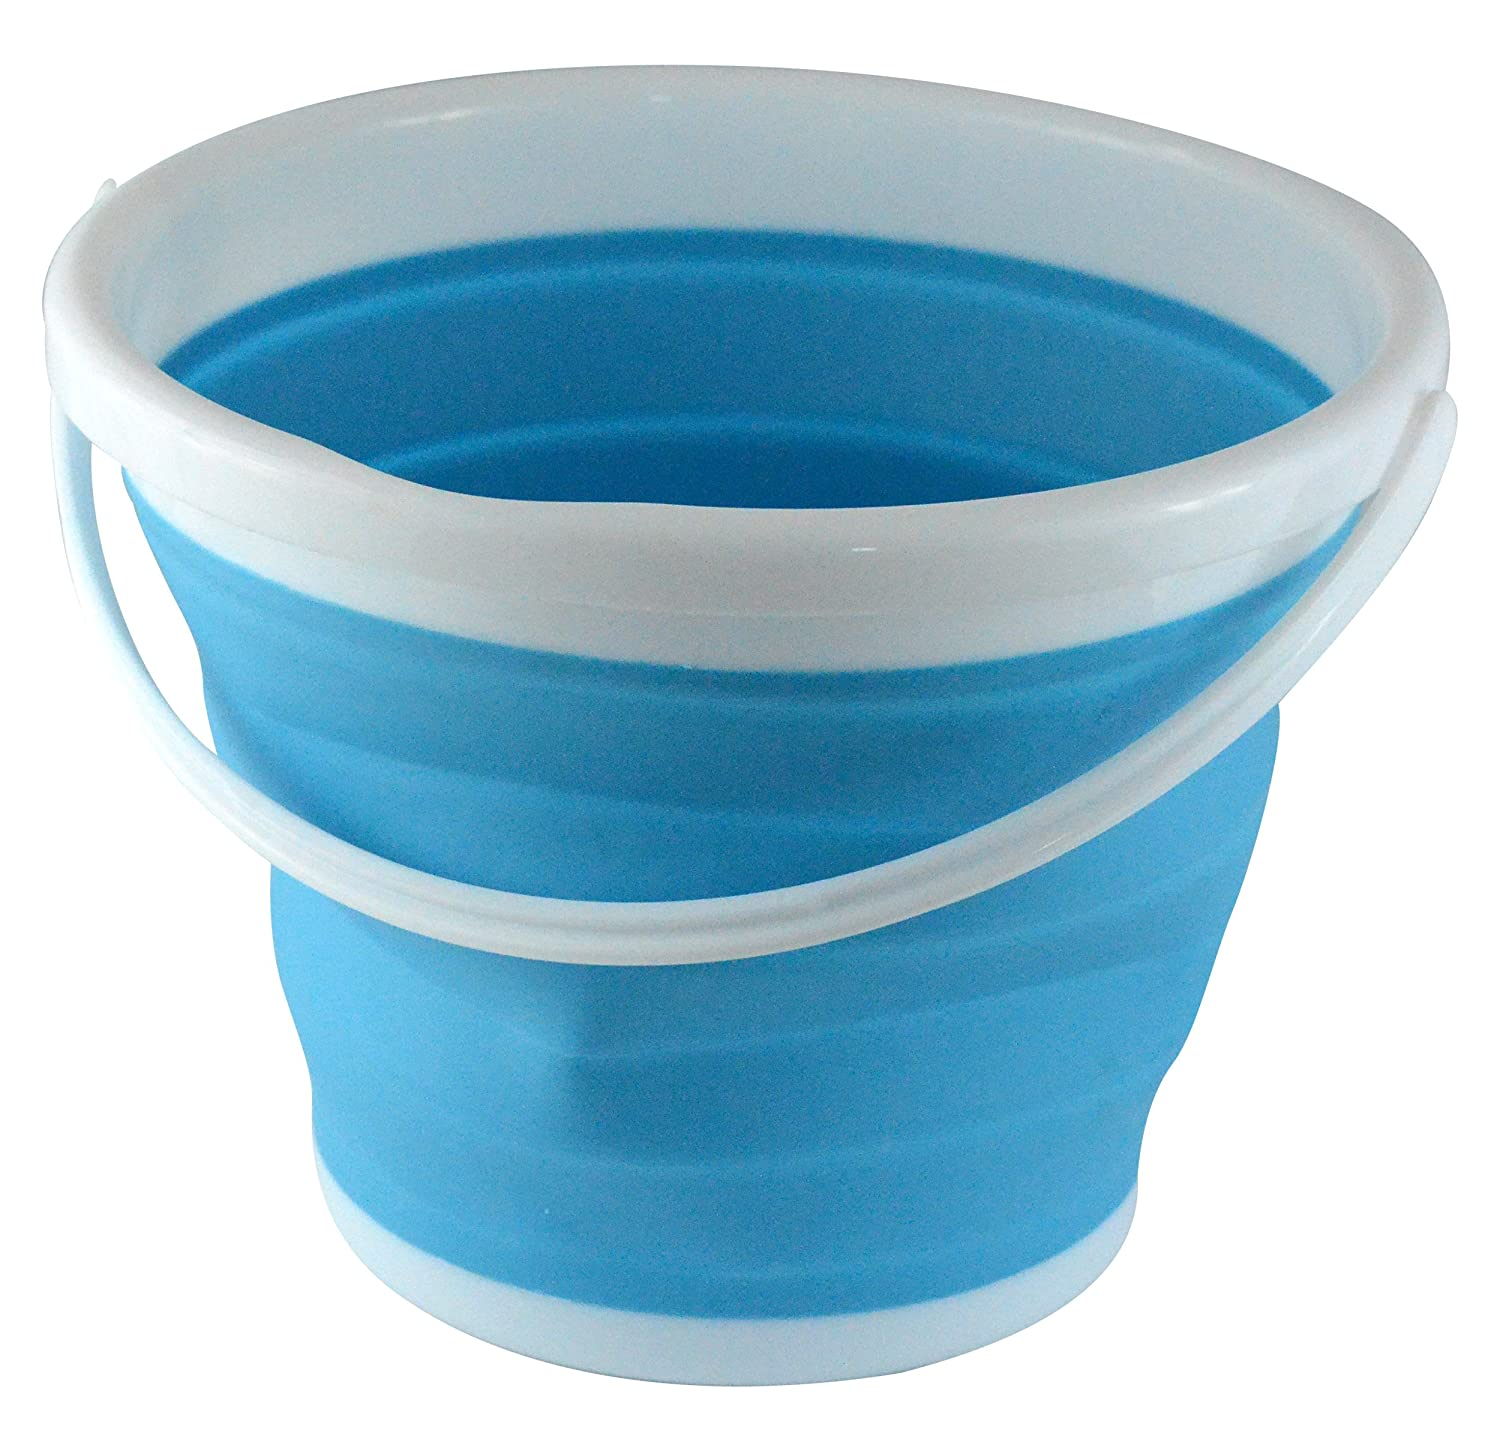 Southern Homewares Silicone Collapsible 2.65 Gallon Bucket, Blue. SH-10129